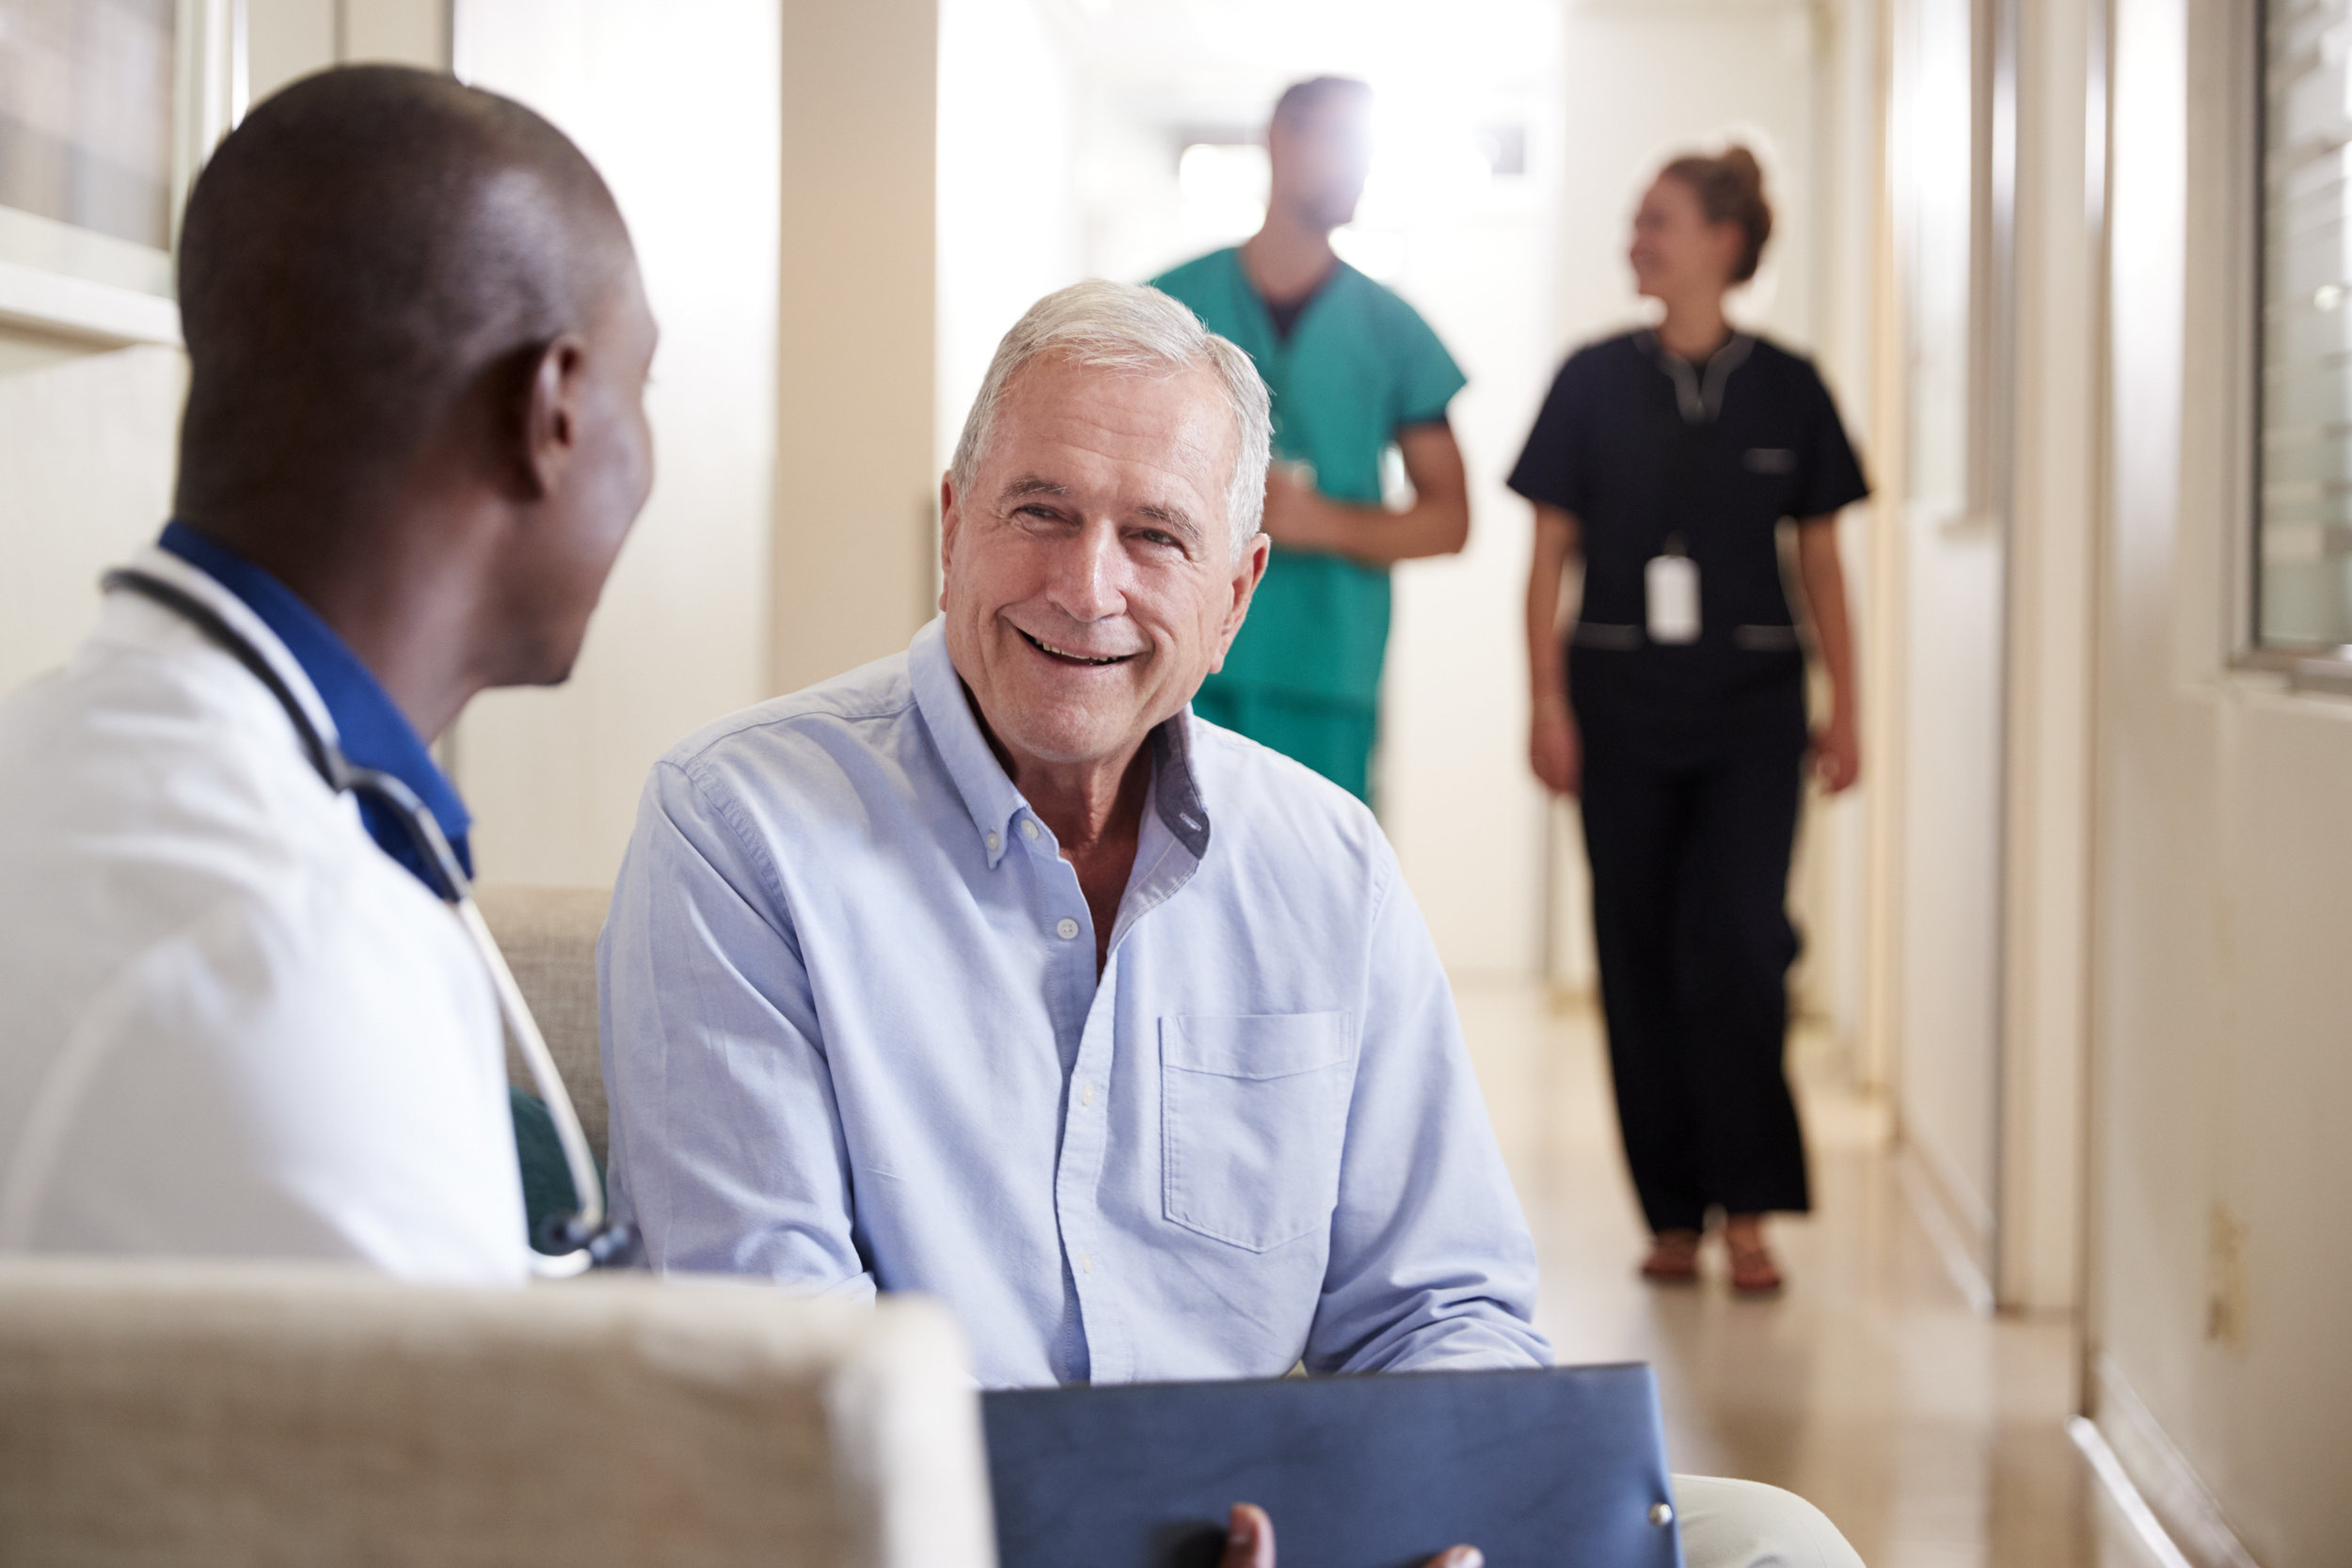 Smiling patient meeting with his doctor to talk about test results in hospital hallway